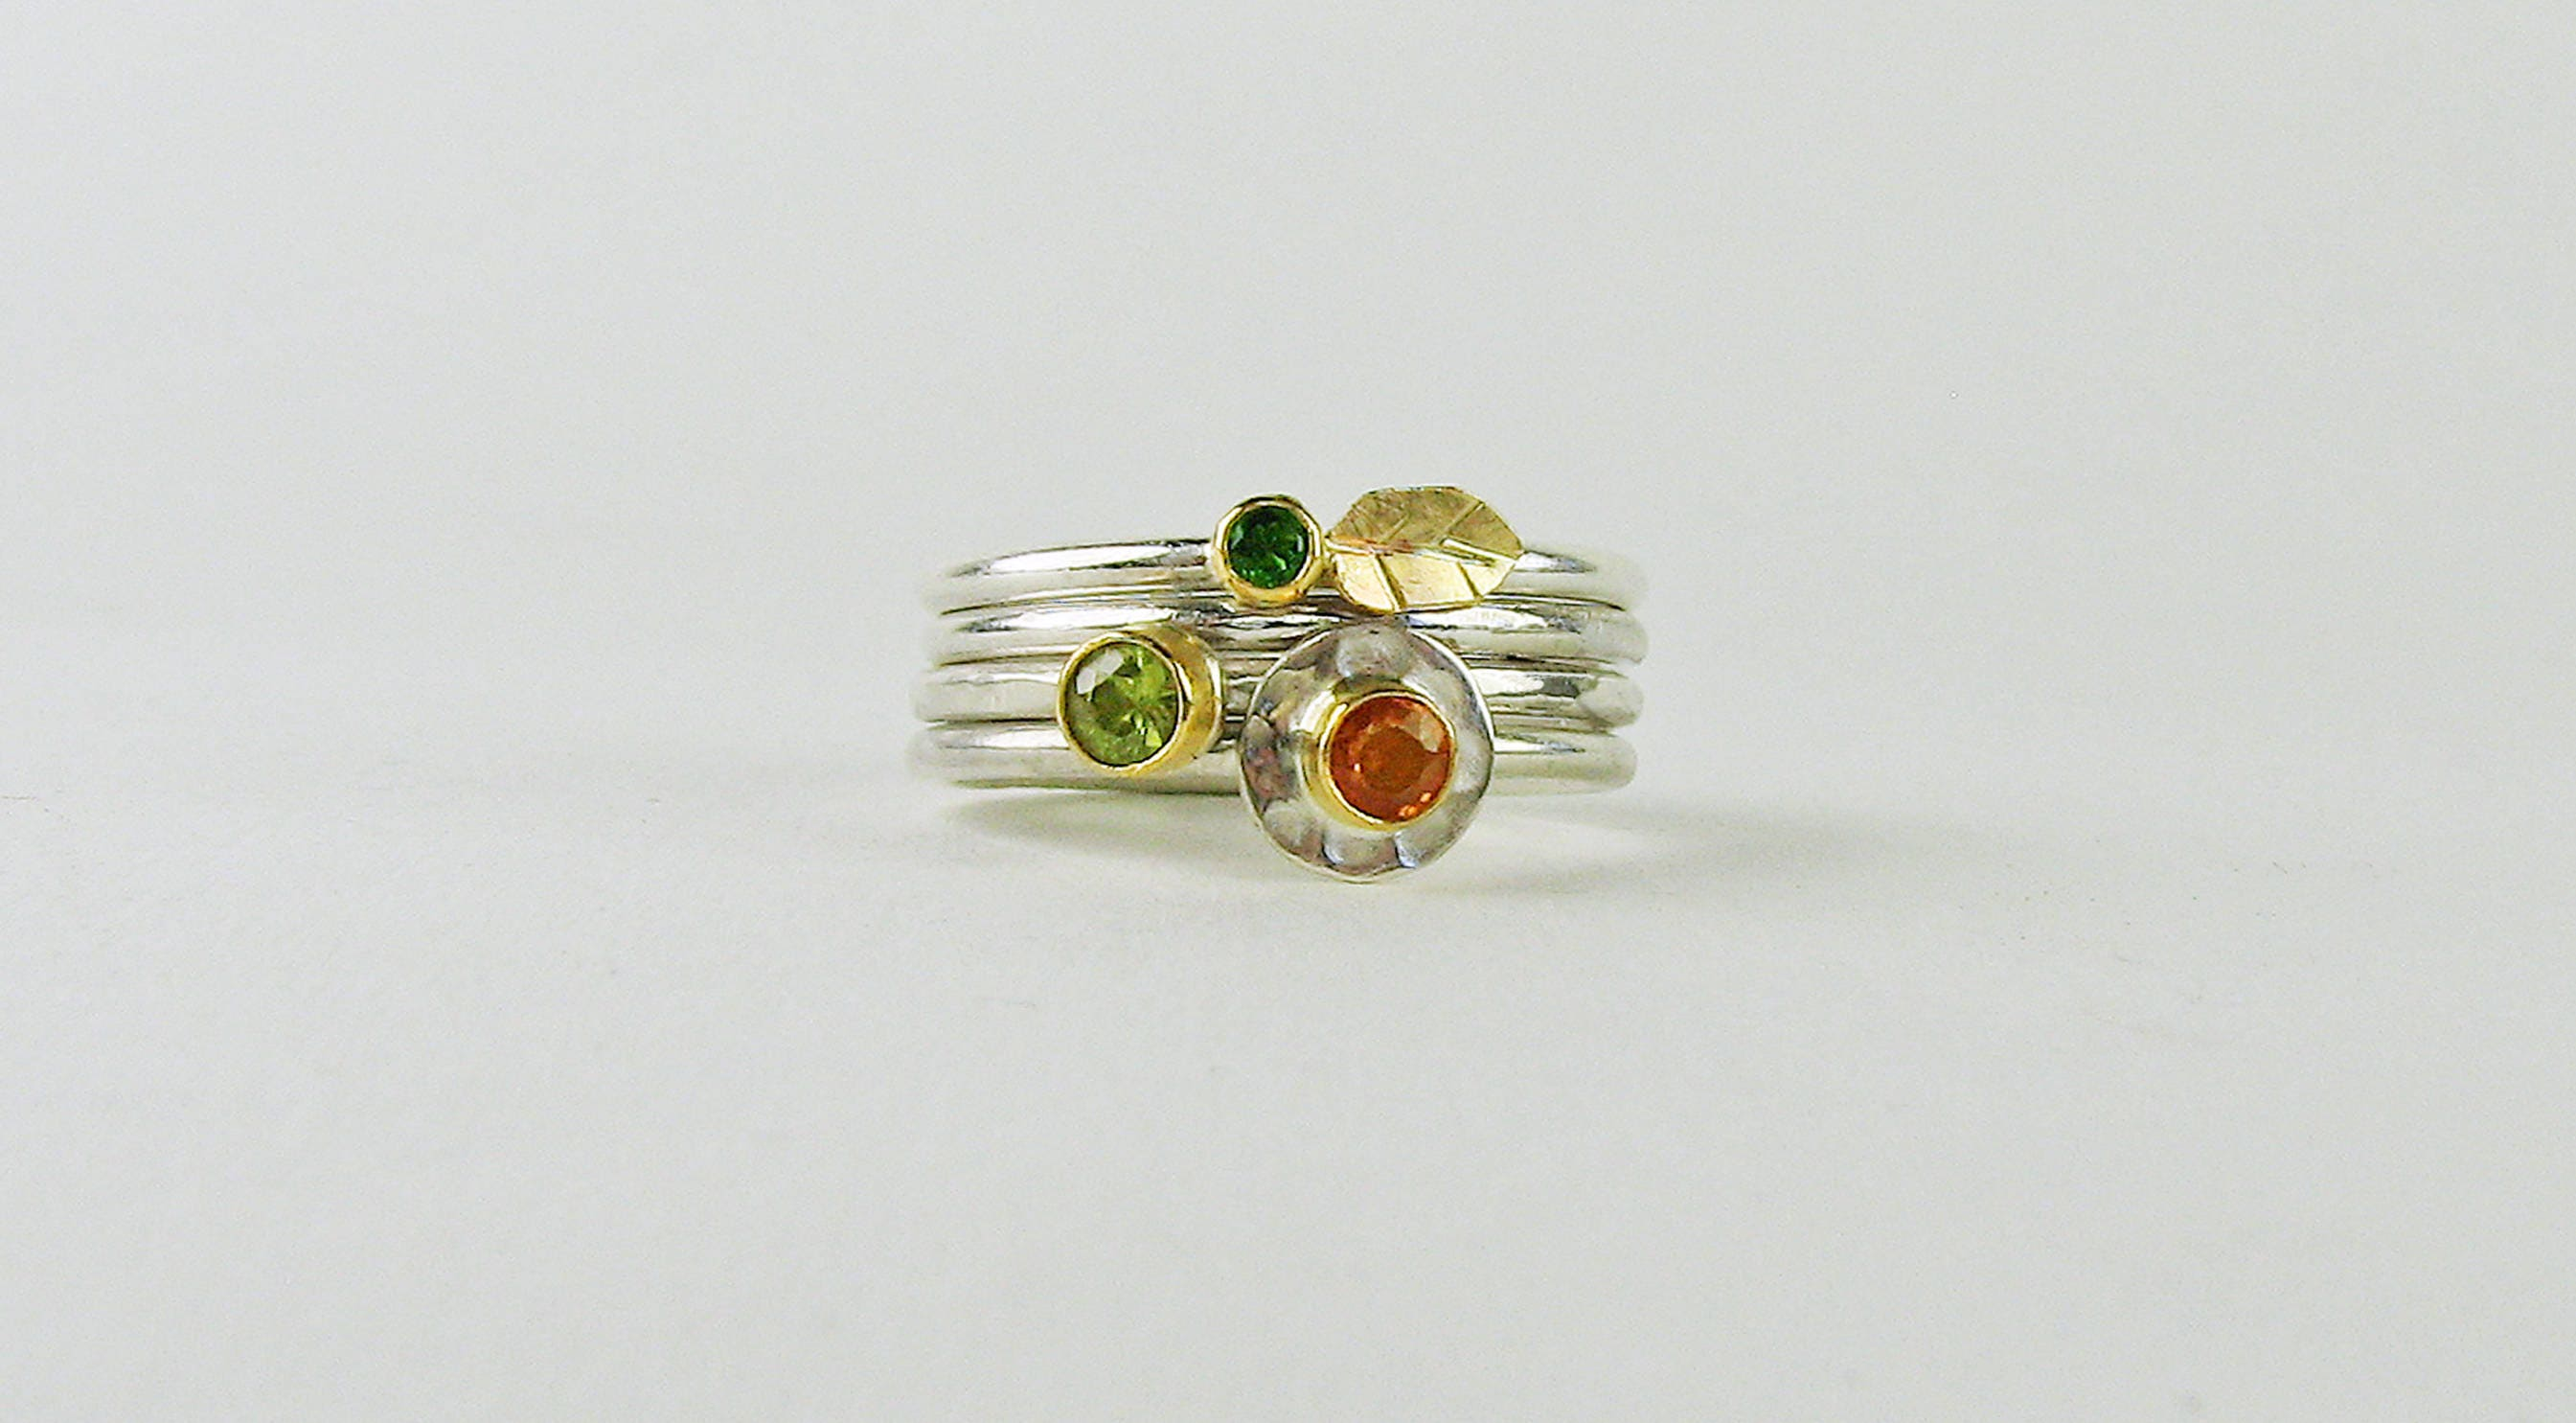 pin ring a natural time limited on feminine sale bespoke rings distinctive sphene for the beautiful